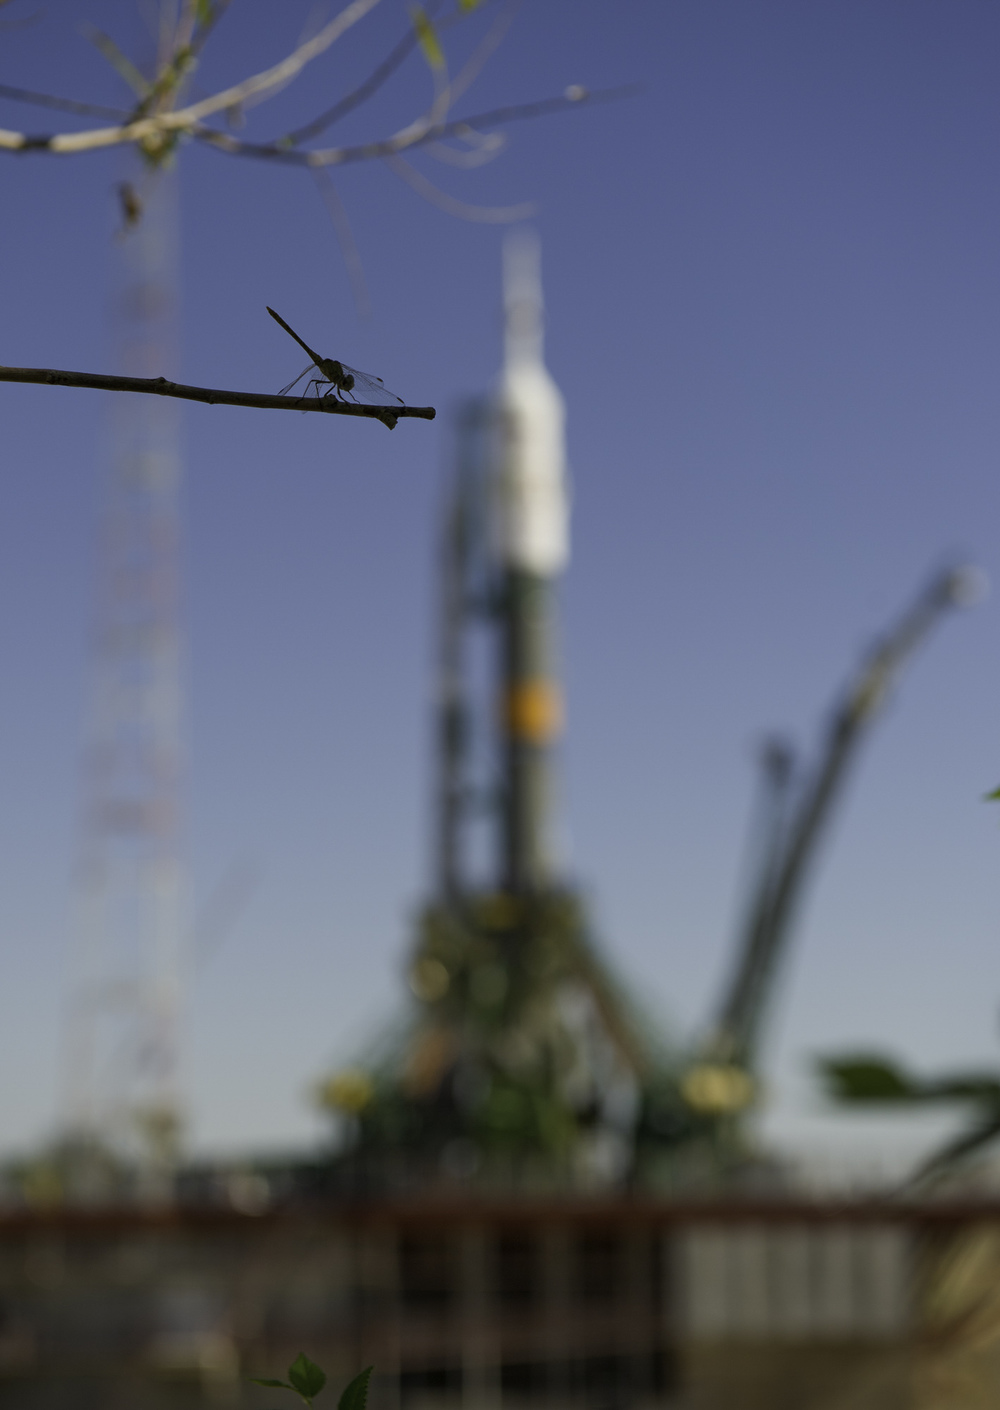 A dragonfly lights on a tree branch near the launch pad after the Soyuz TMA-05M is rolled to its launch pad at the Baikonur Cosmodrome, Thursday, July 12, 2012 in Kazakhstan. The launch of the Soyuz rocket is scheduled for the morning of July 15 local time. (NASA/Carla Cioffi)